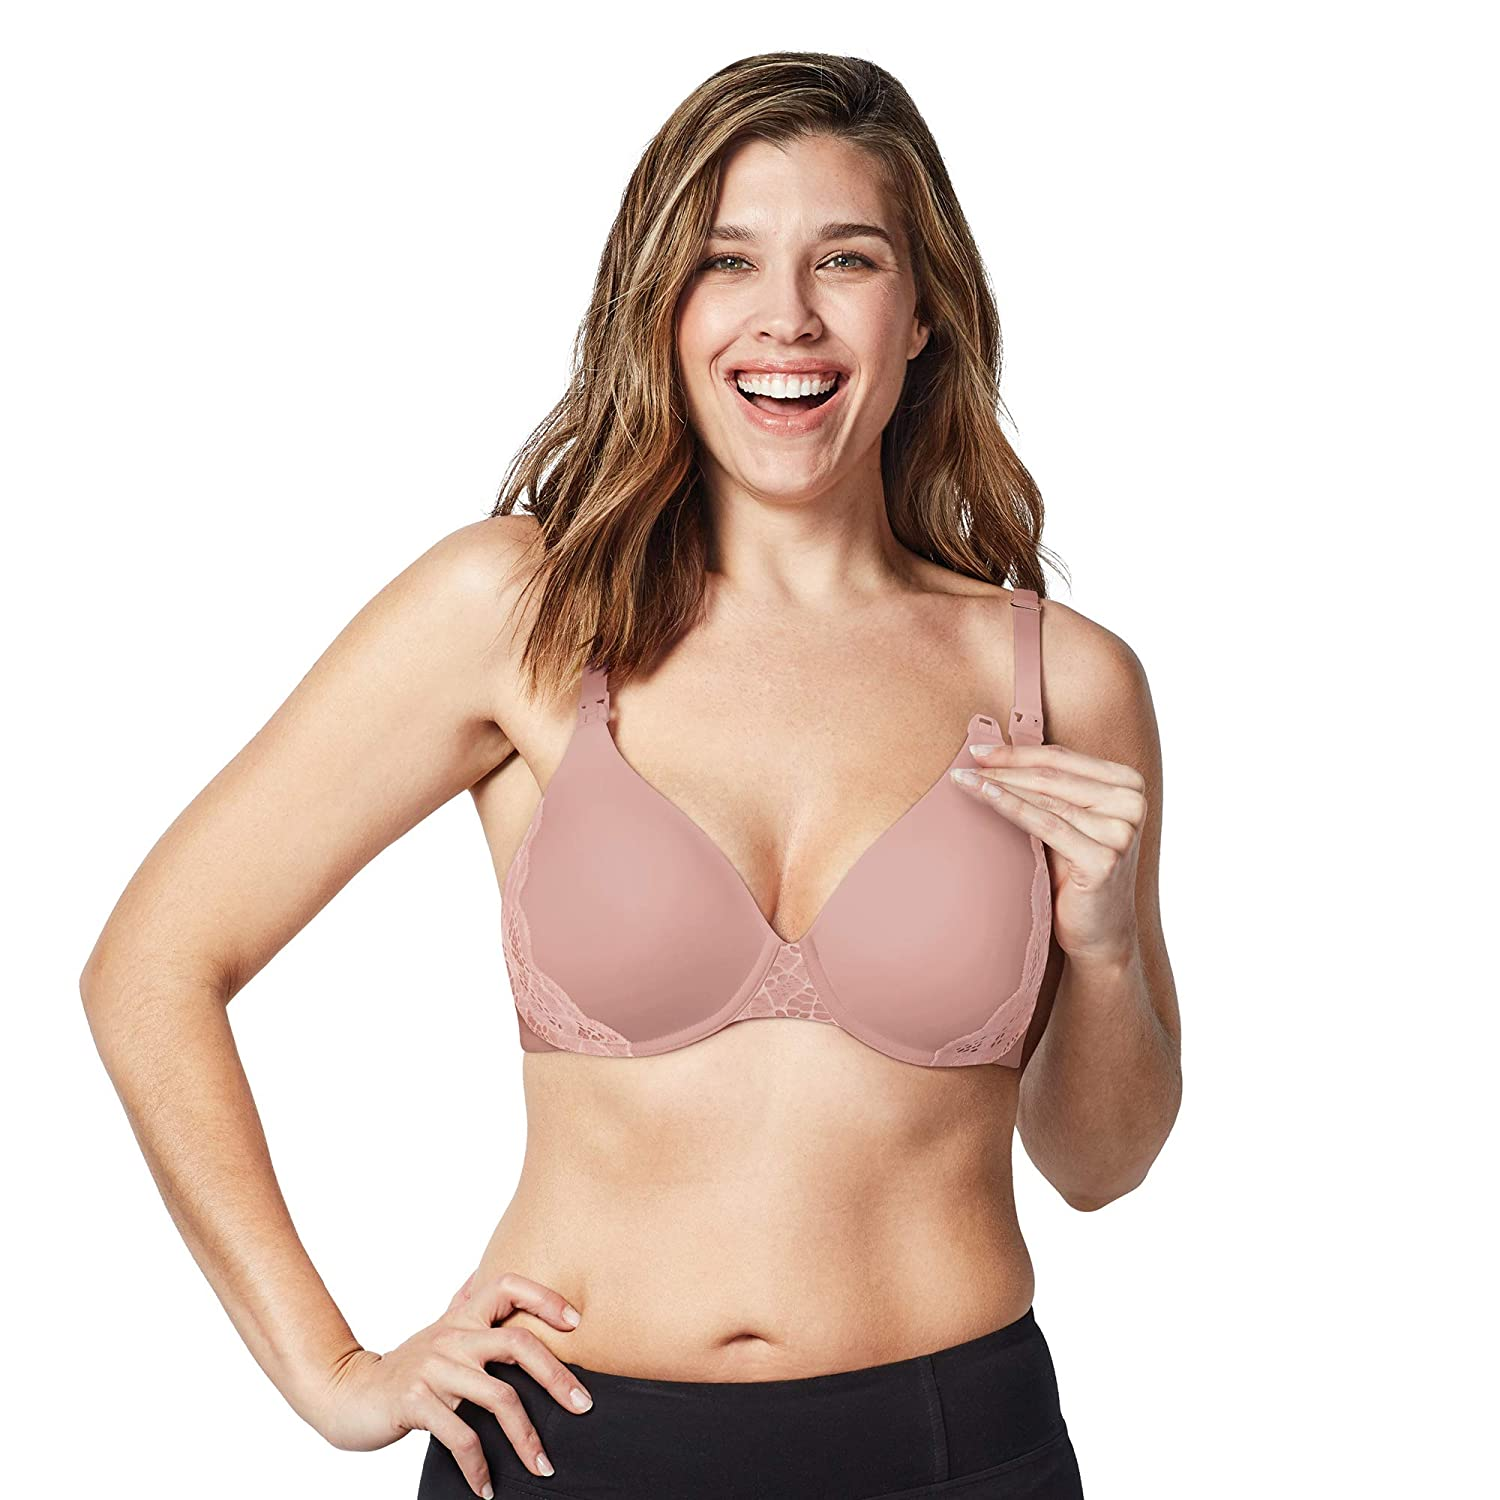 fb74ae4f14 BRAVADO! DESIGNS Women s Maternity Belle Underwire Nursing Bra at Amazon  Women s Clothing store